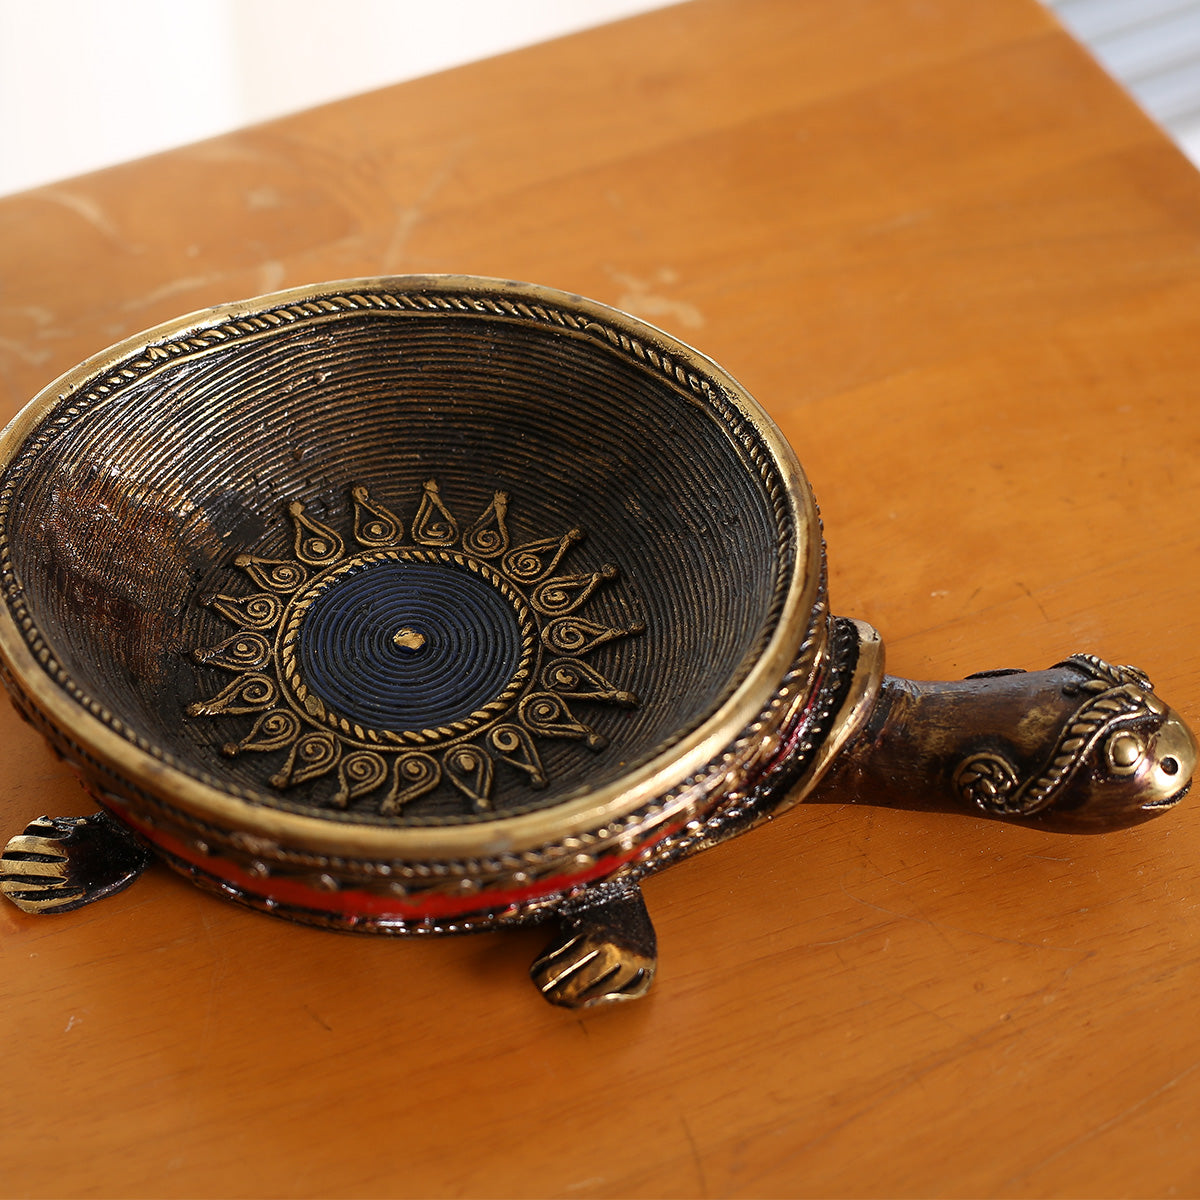 Tortoise Candle holder in Dokra art from Bastar-Red Color